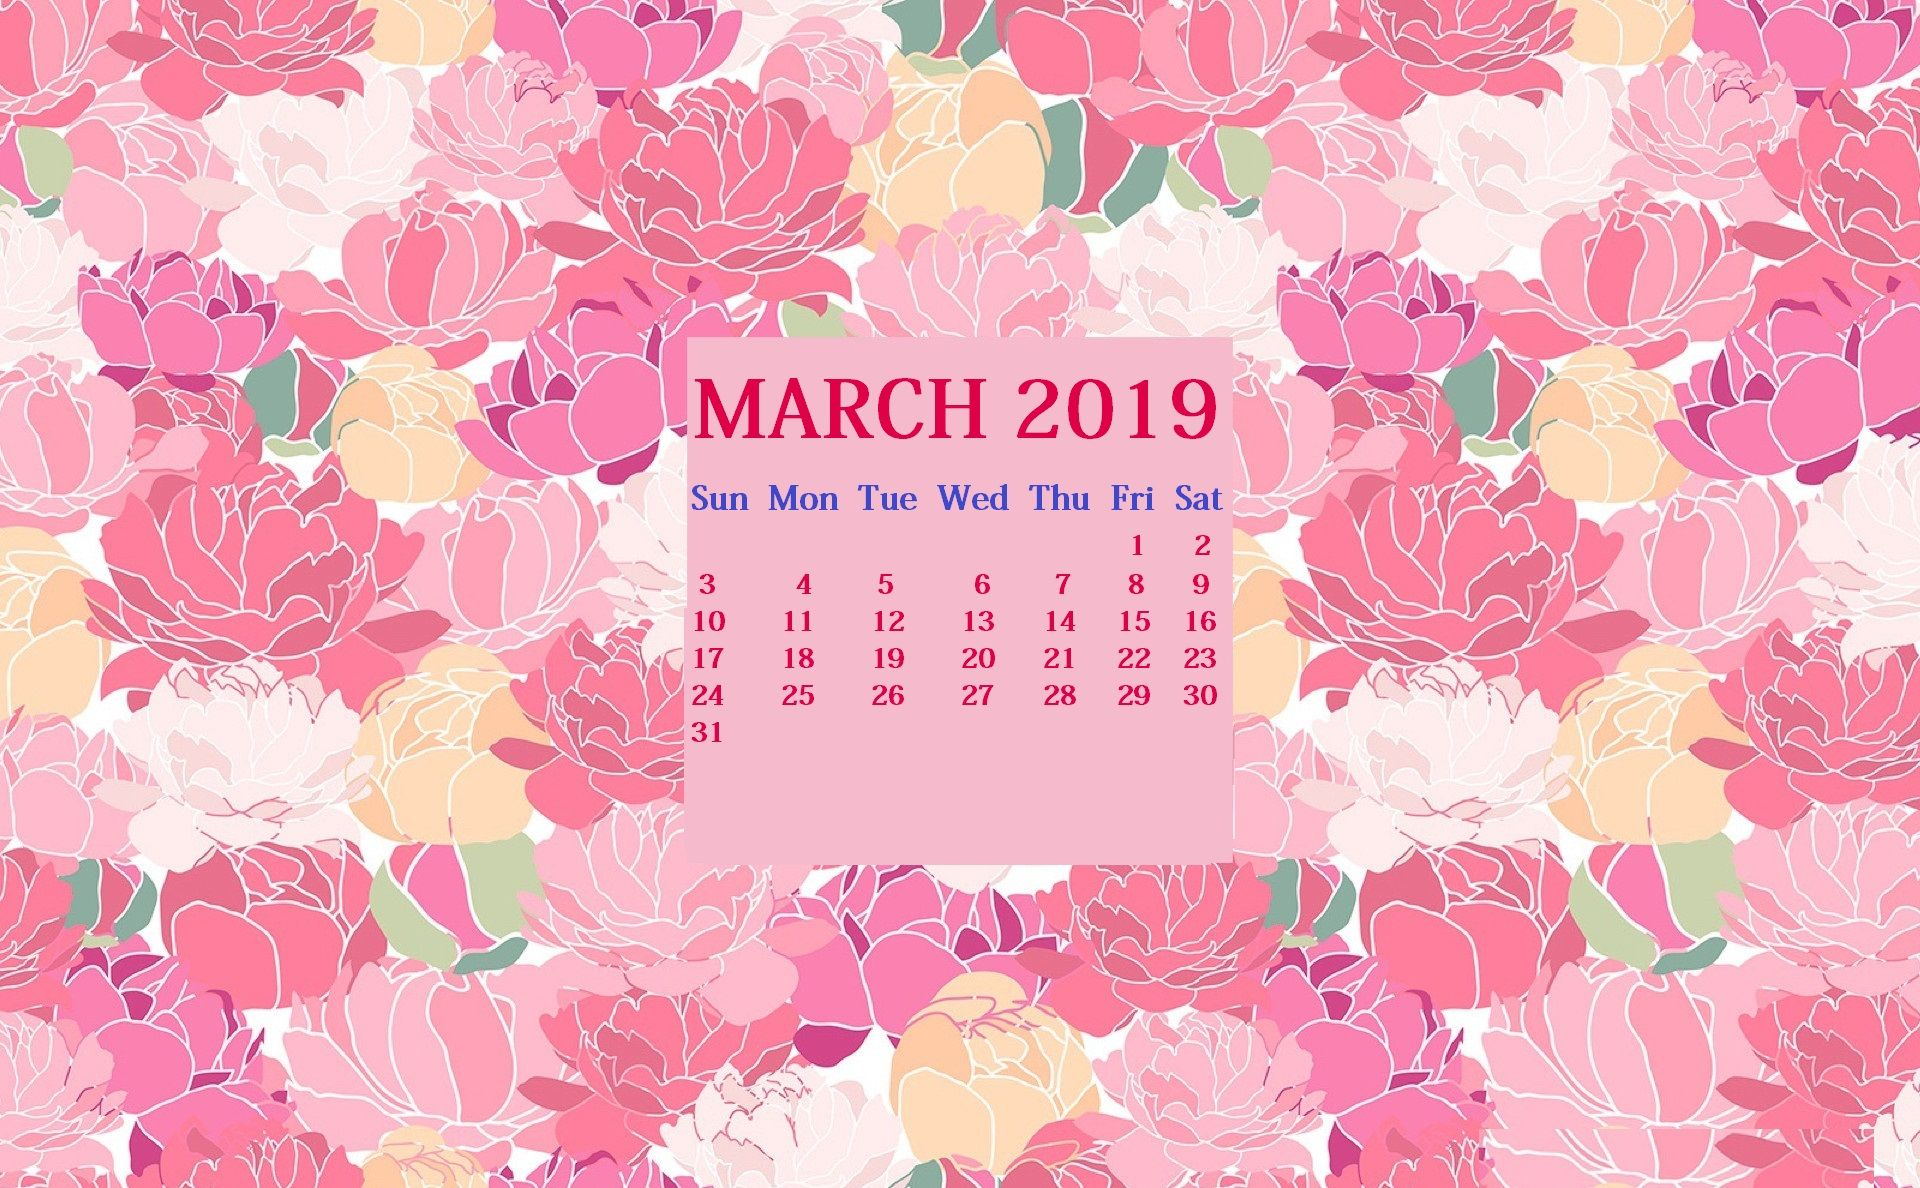 Monthly 2019 Hd Calendar Wallpaper Calendar Wallpaper Calendar Design Wallpaper